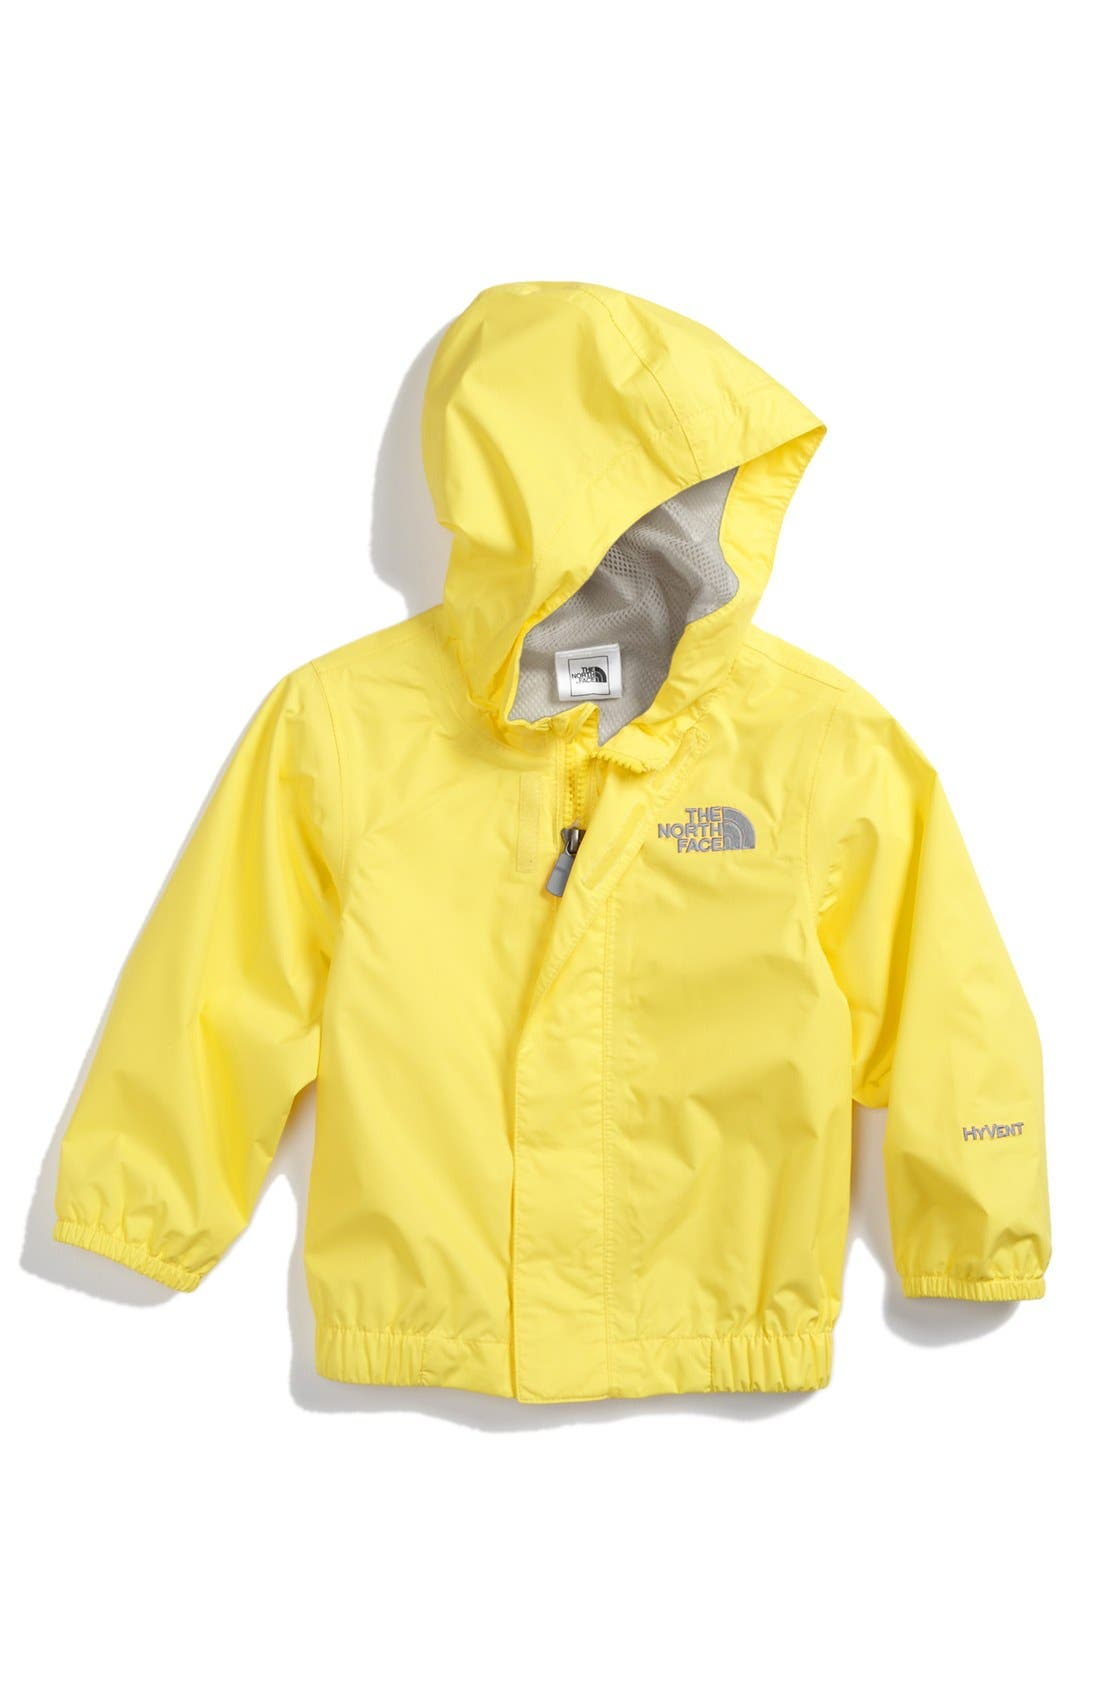 Alternate Image 1 Selected - The North Face 'Tailout' Rain Jacket (Toddler)